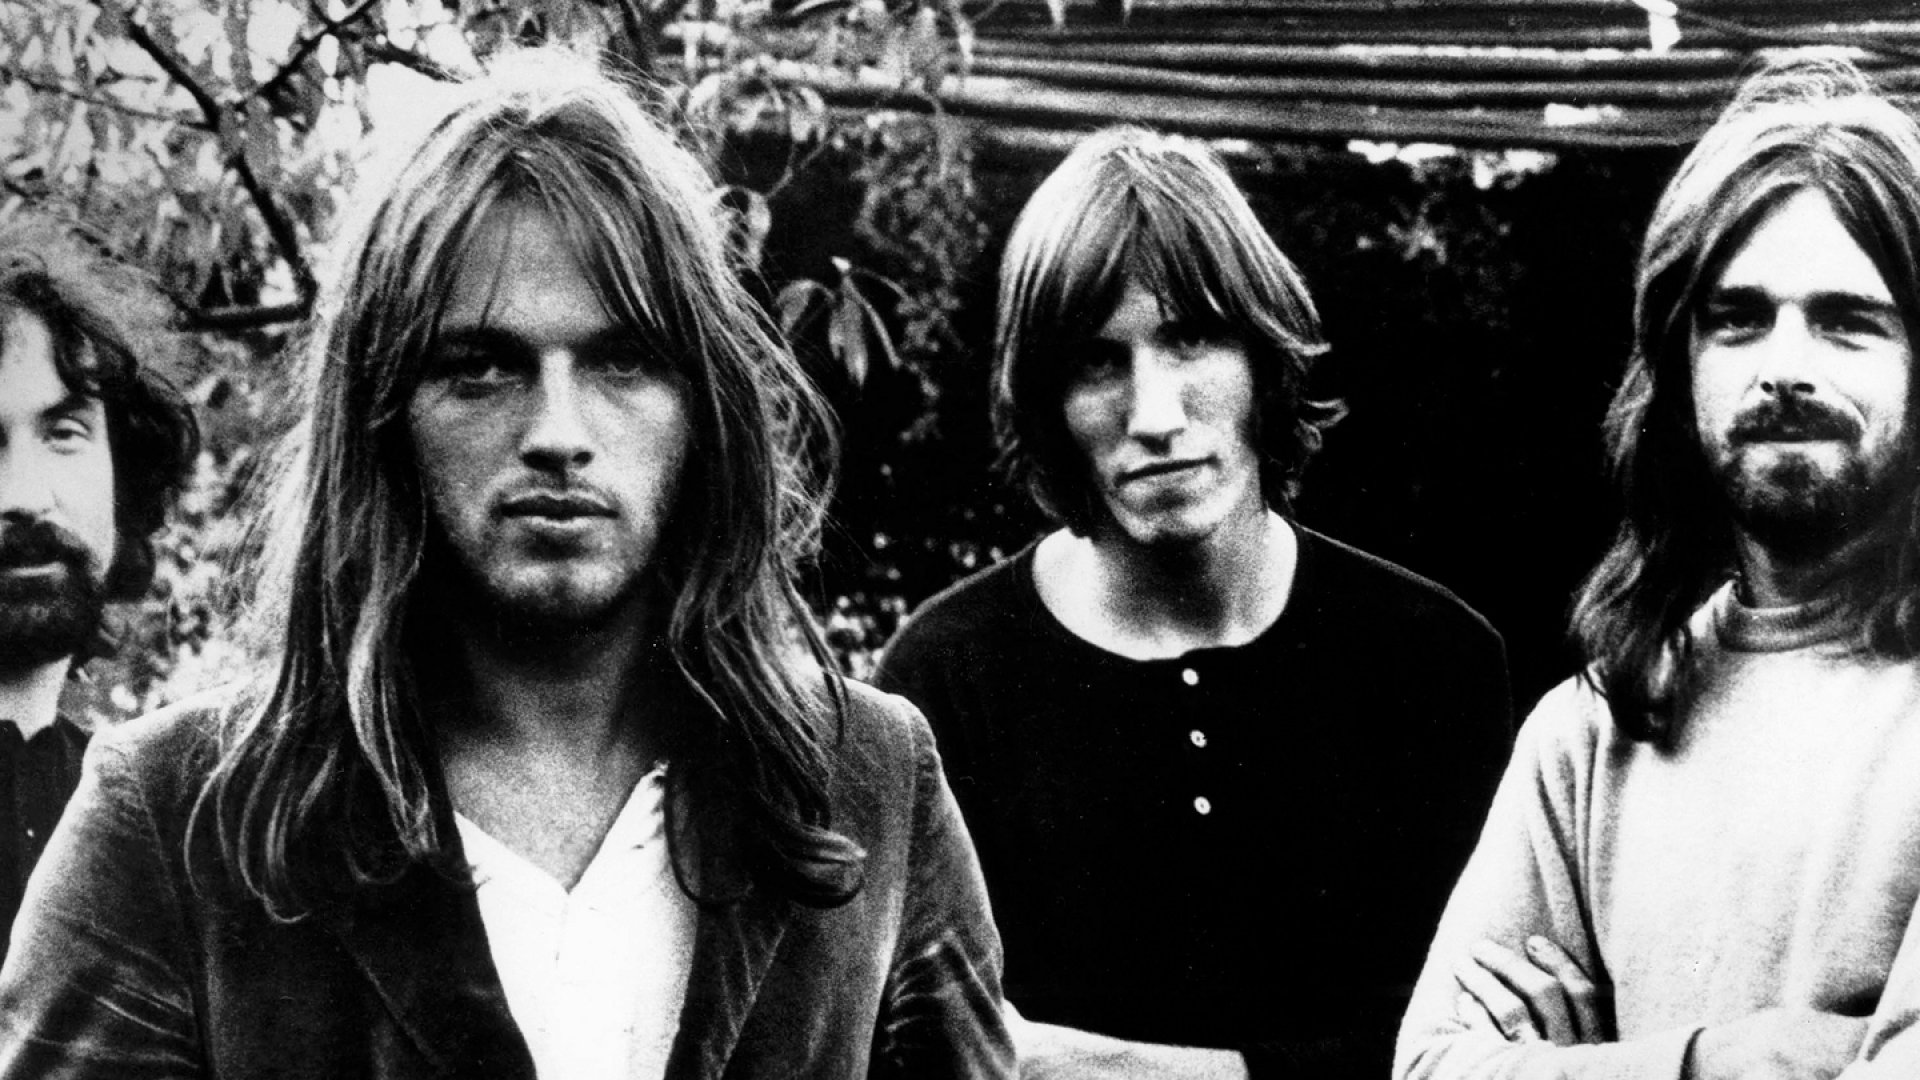 <strong>Money, It's A Gas:</strong> (group from left) Nick Mason, David Gilmour, Roger Waters and Rick Wright